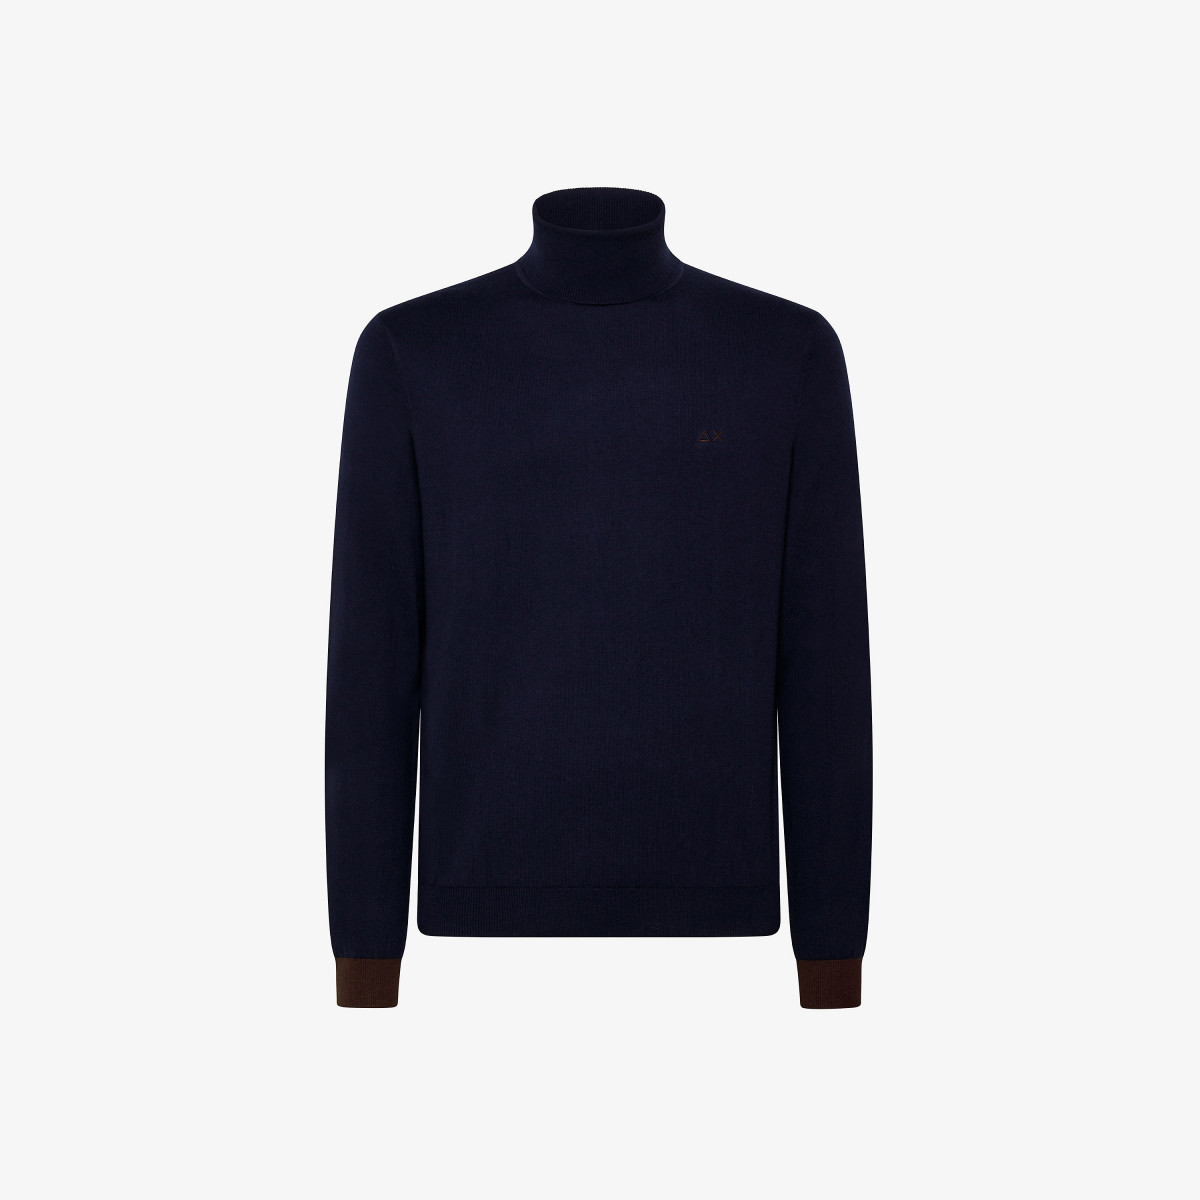 TURTLE ELBOW CONTRAST NAVY BLUE